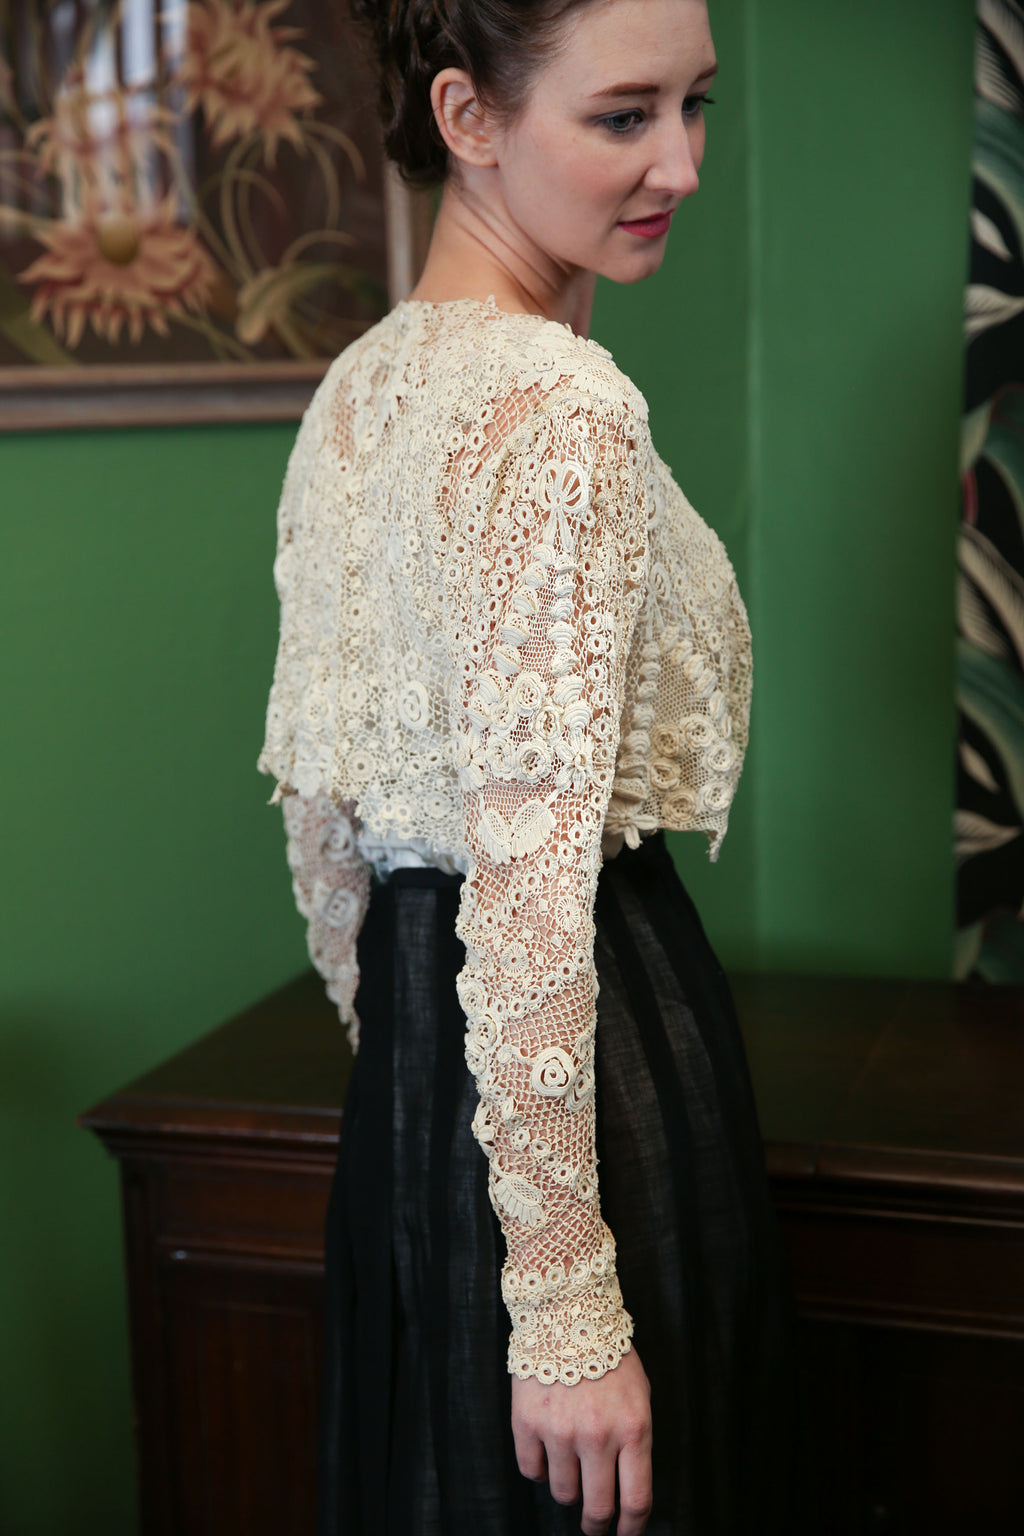 Rare and Striking Irish Crochet Lace Top from 1900s Era Gown, Gorgeous Textile